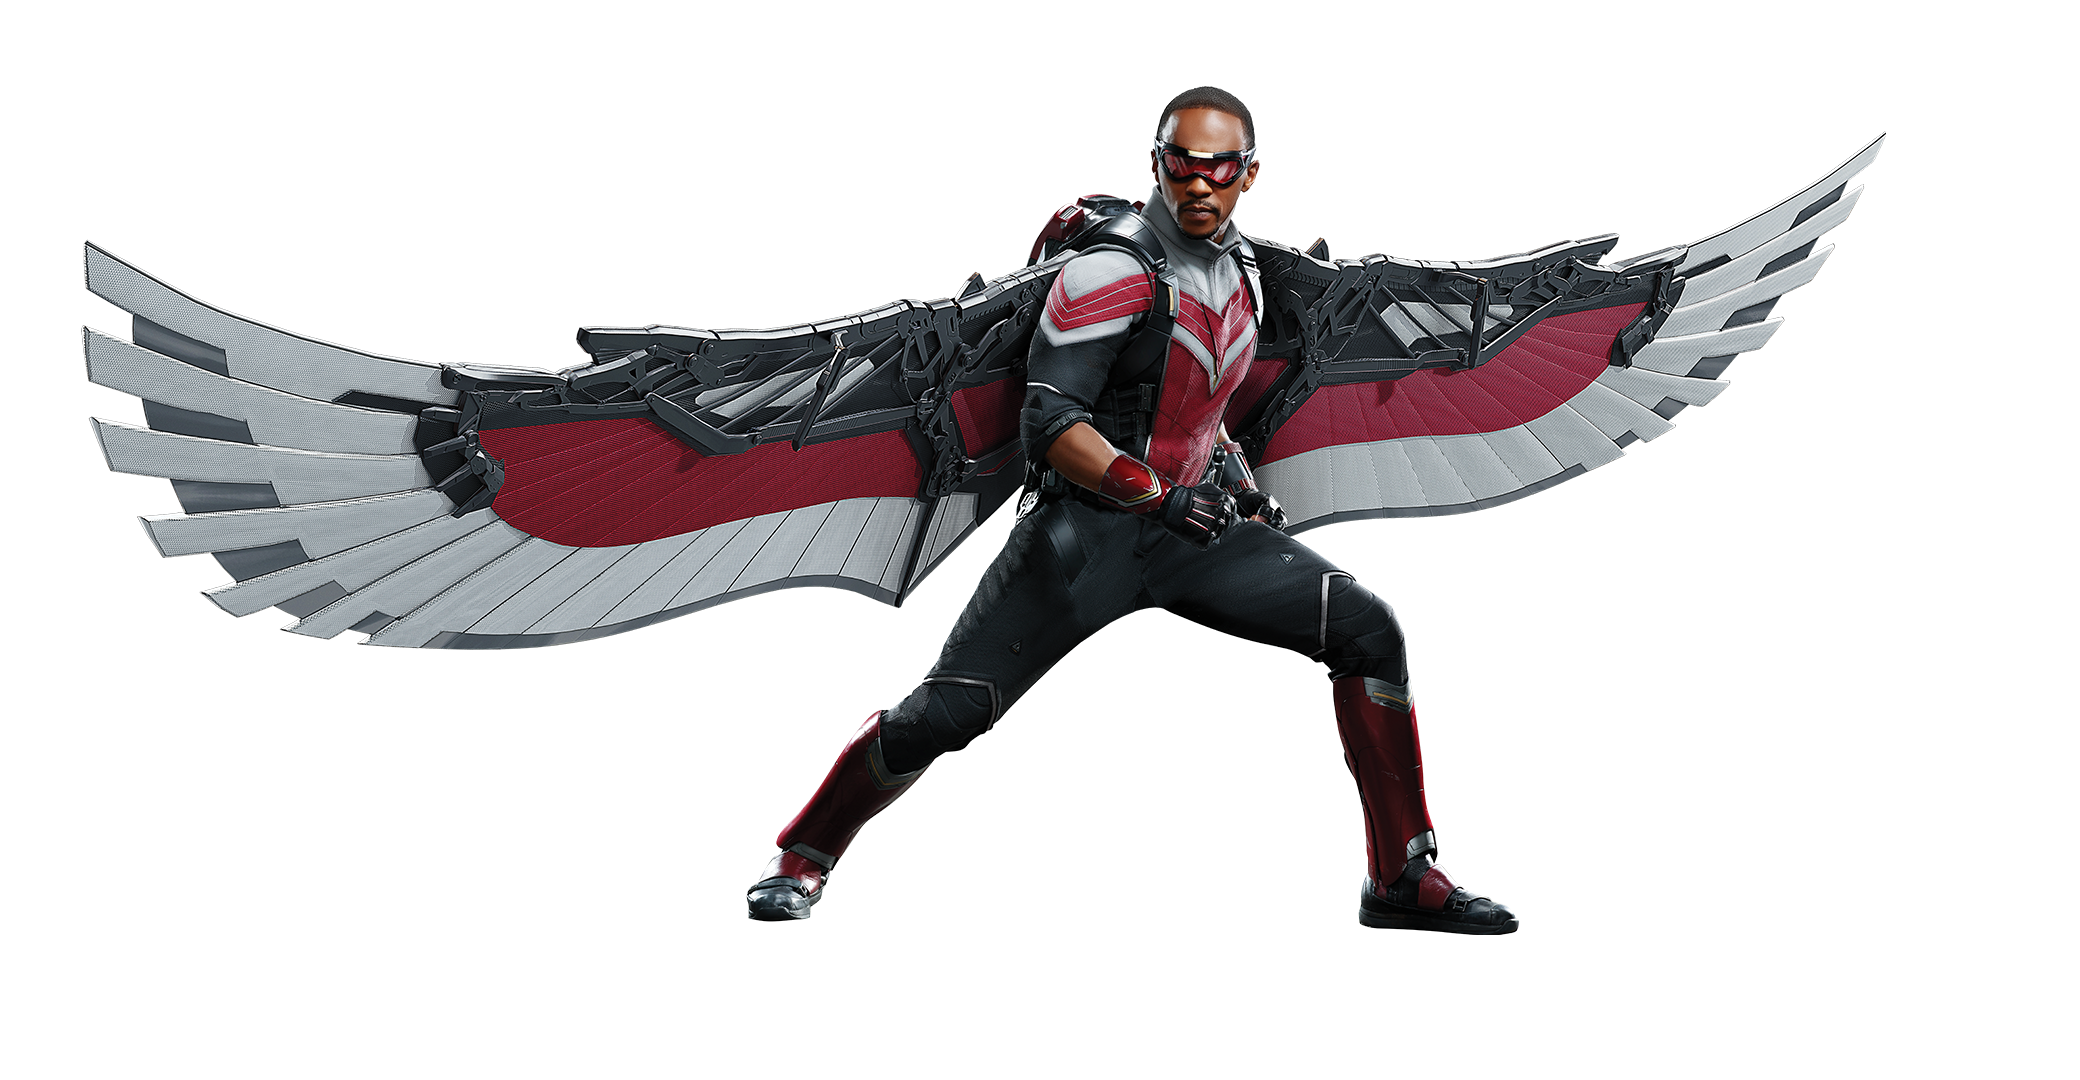 Sam Wilson, played by Anthony Mackie, in his winged Falcon costume